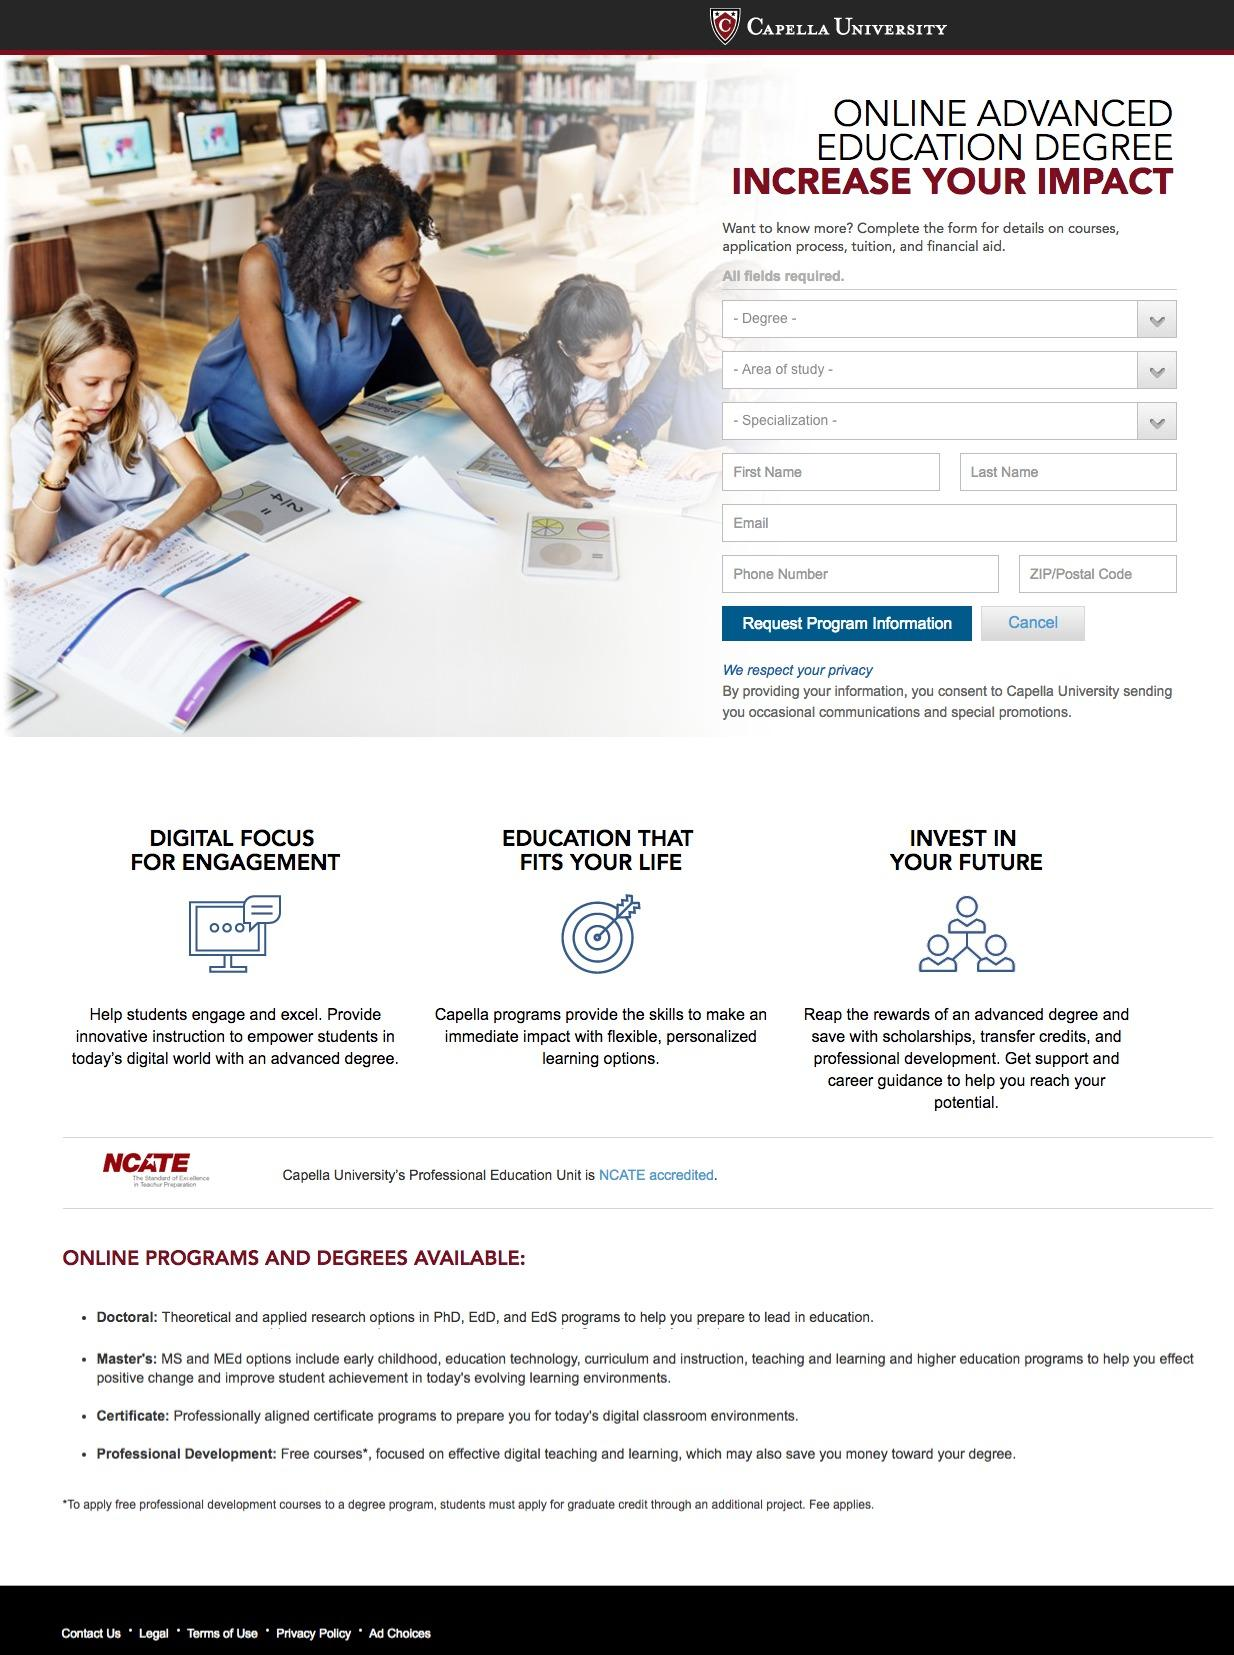 This picture shows marketers how Capella University uses an education landing page to generate new student sign ups.